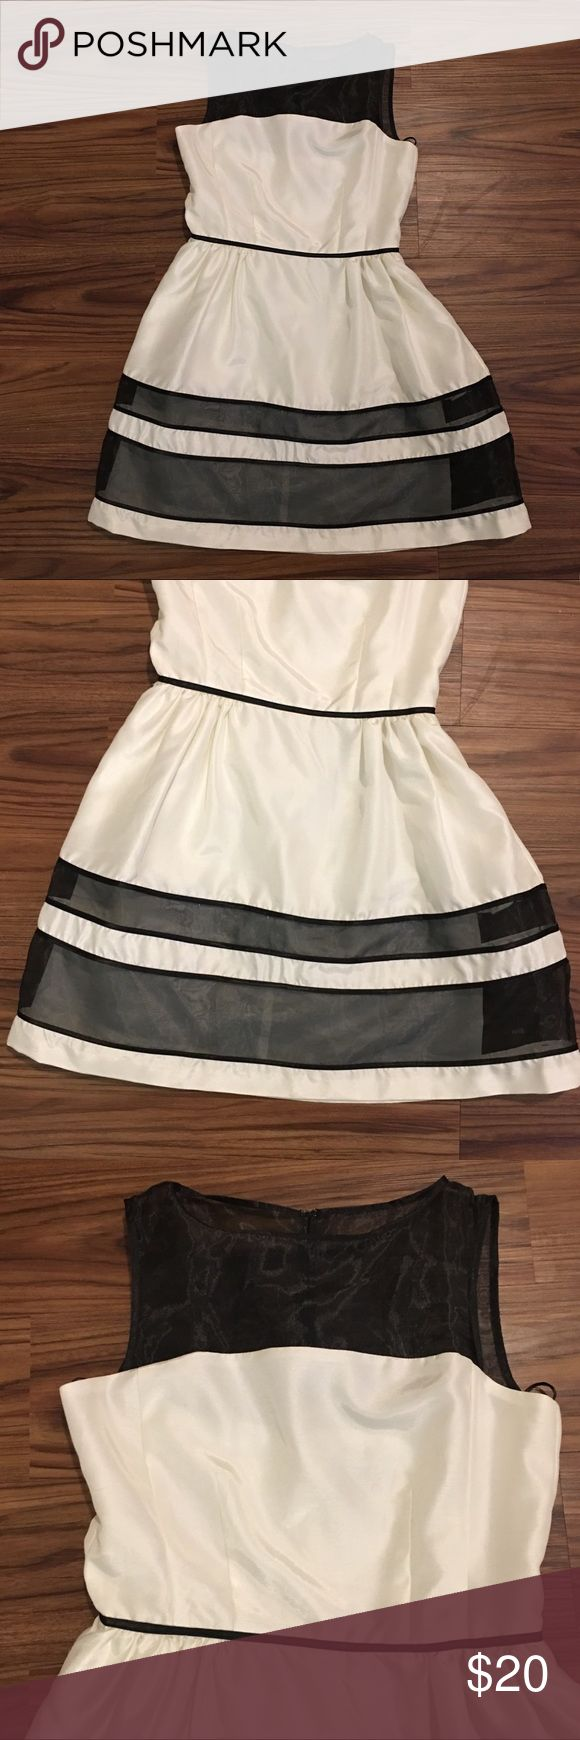 Formal black and white dress size 6 Formal dress. White with black stripes. Zipper back. Sleeveless. Never worn. Lining underneath. Size 6. Dresses Midi